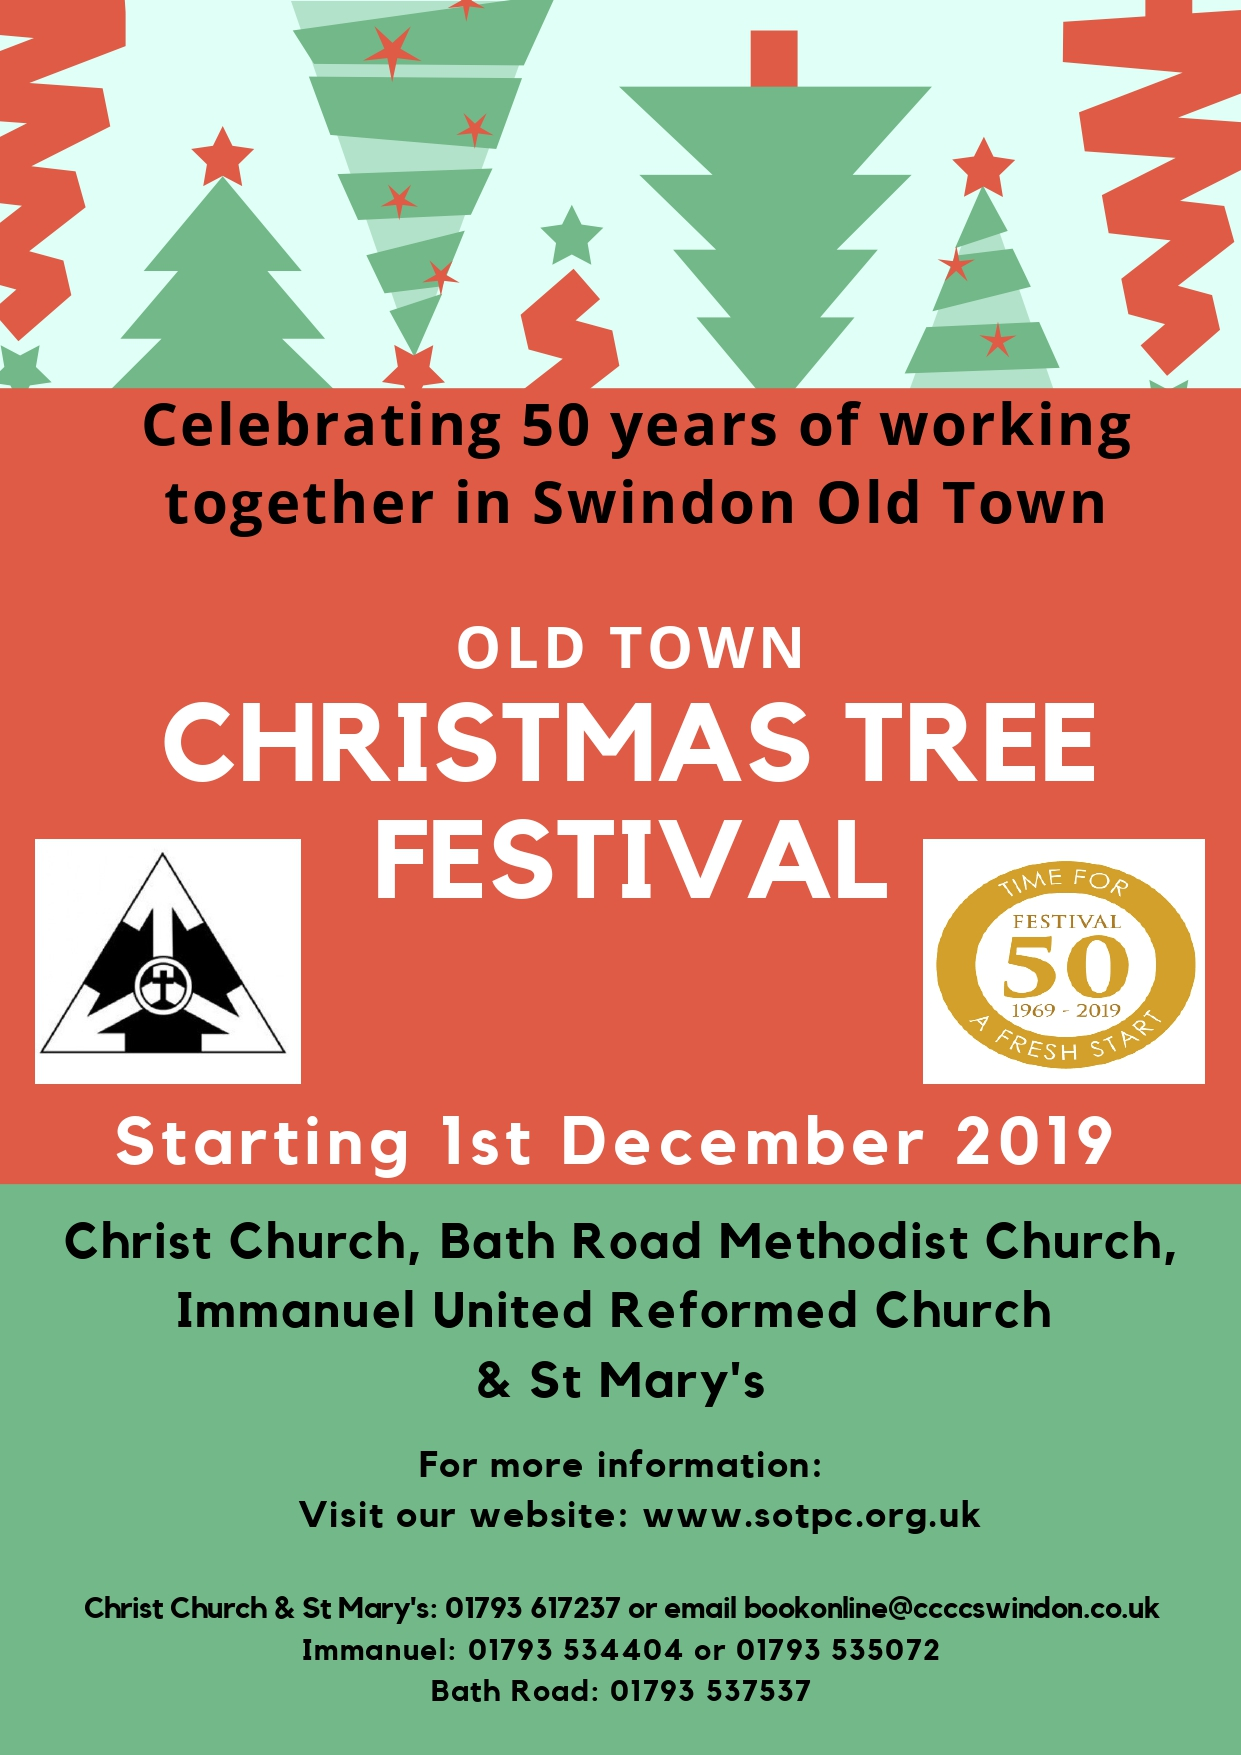 Old Town Christmas Tree Festival